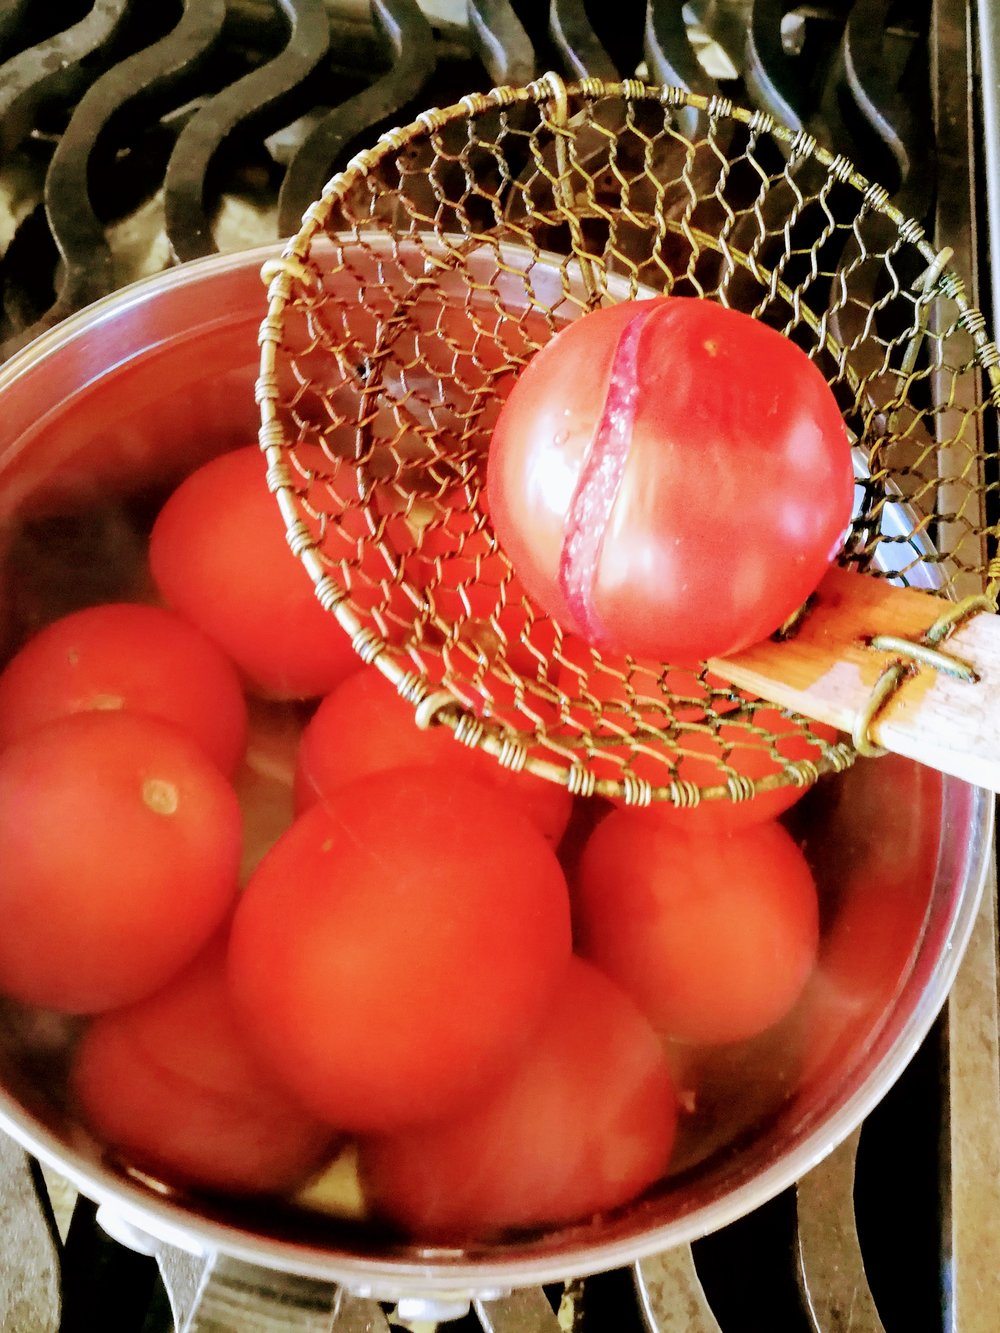 Blanching Tomatoes - When the skin begins to crack, remove the tomatoes from the boiling water and place them in a bowl of ice water.